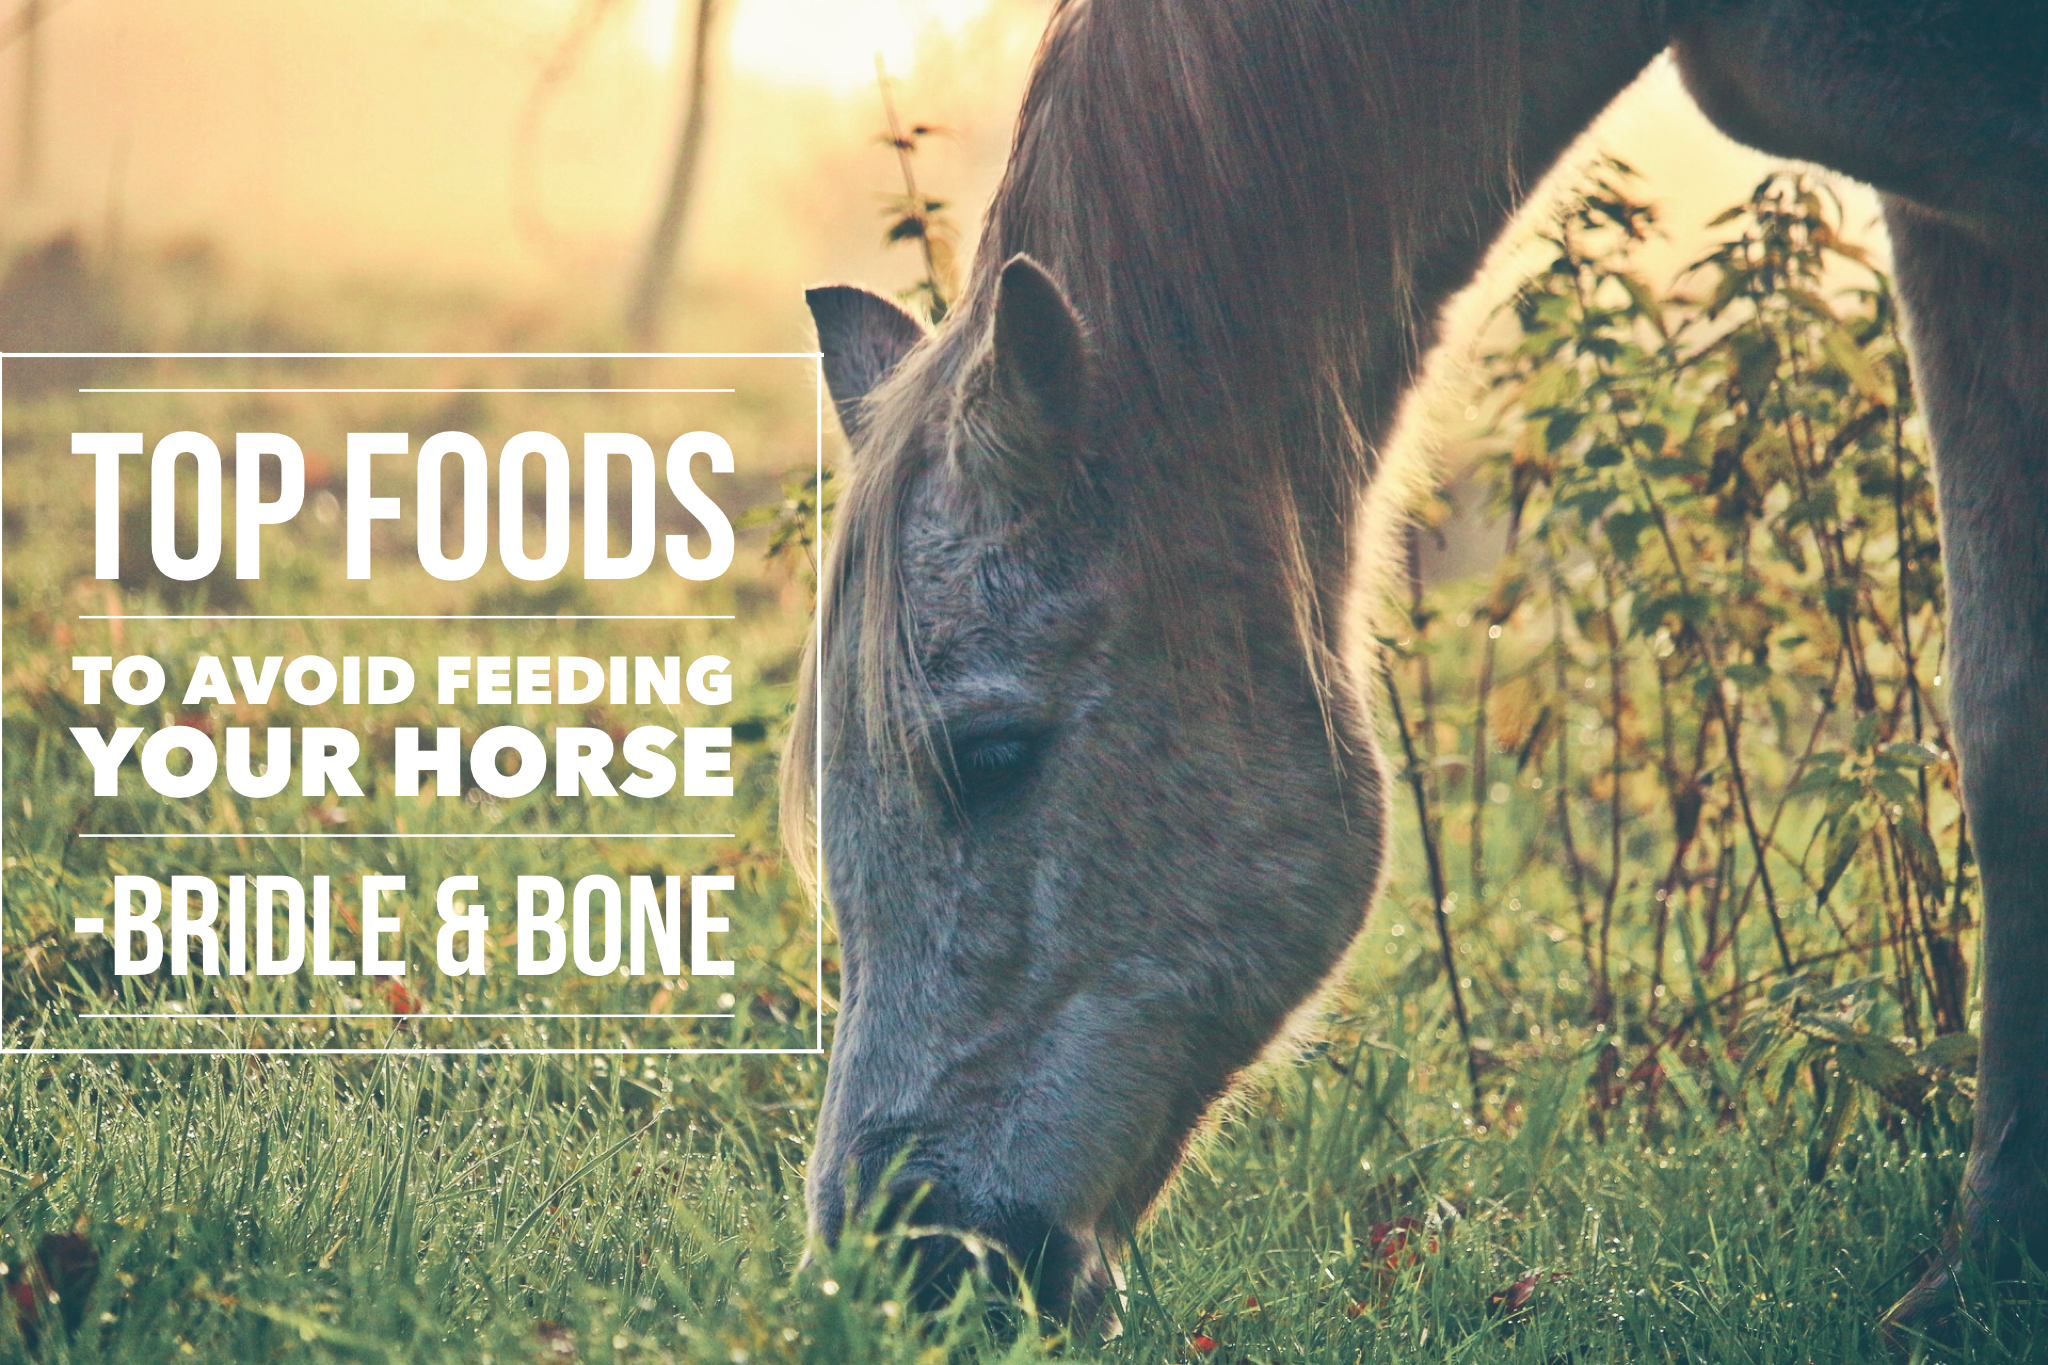 Top Foods to Avoid Feeding Your Horse